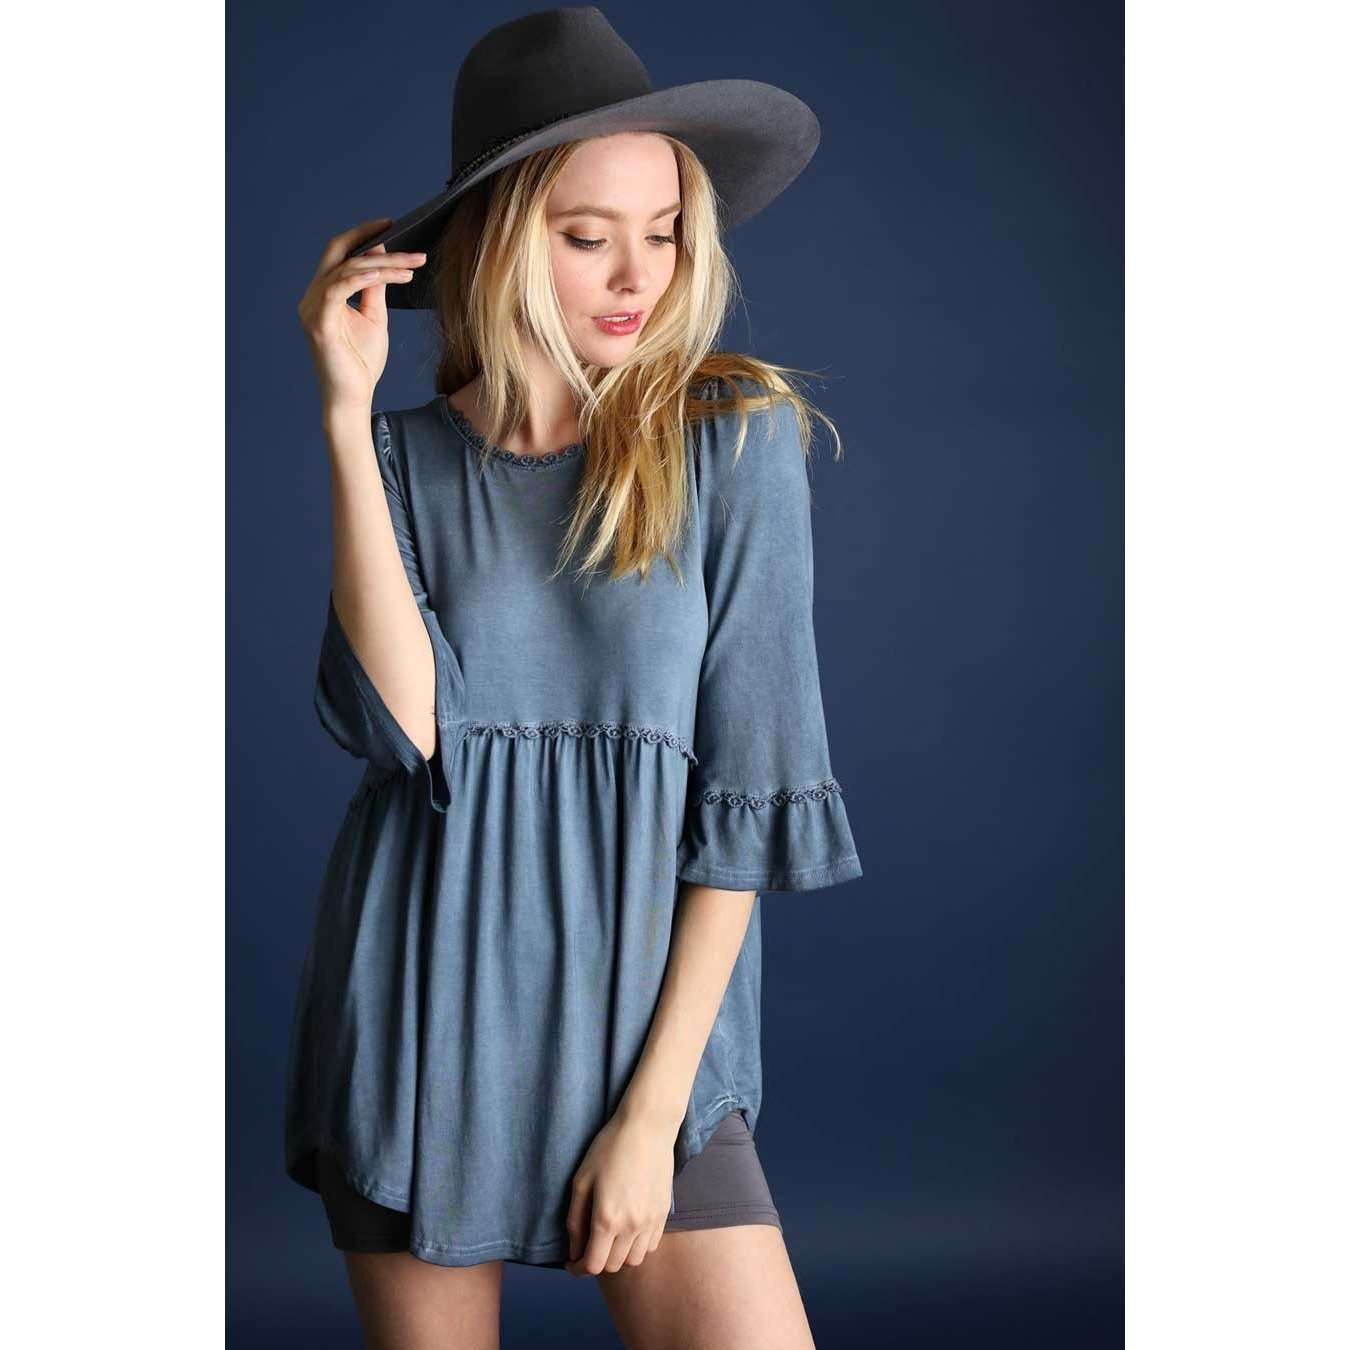 Joni Midnight Blue Babydoll Top